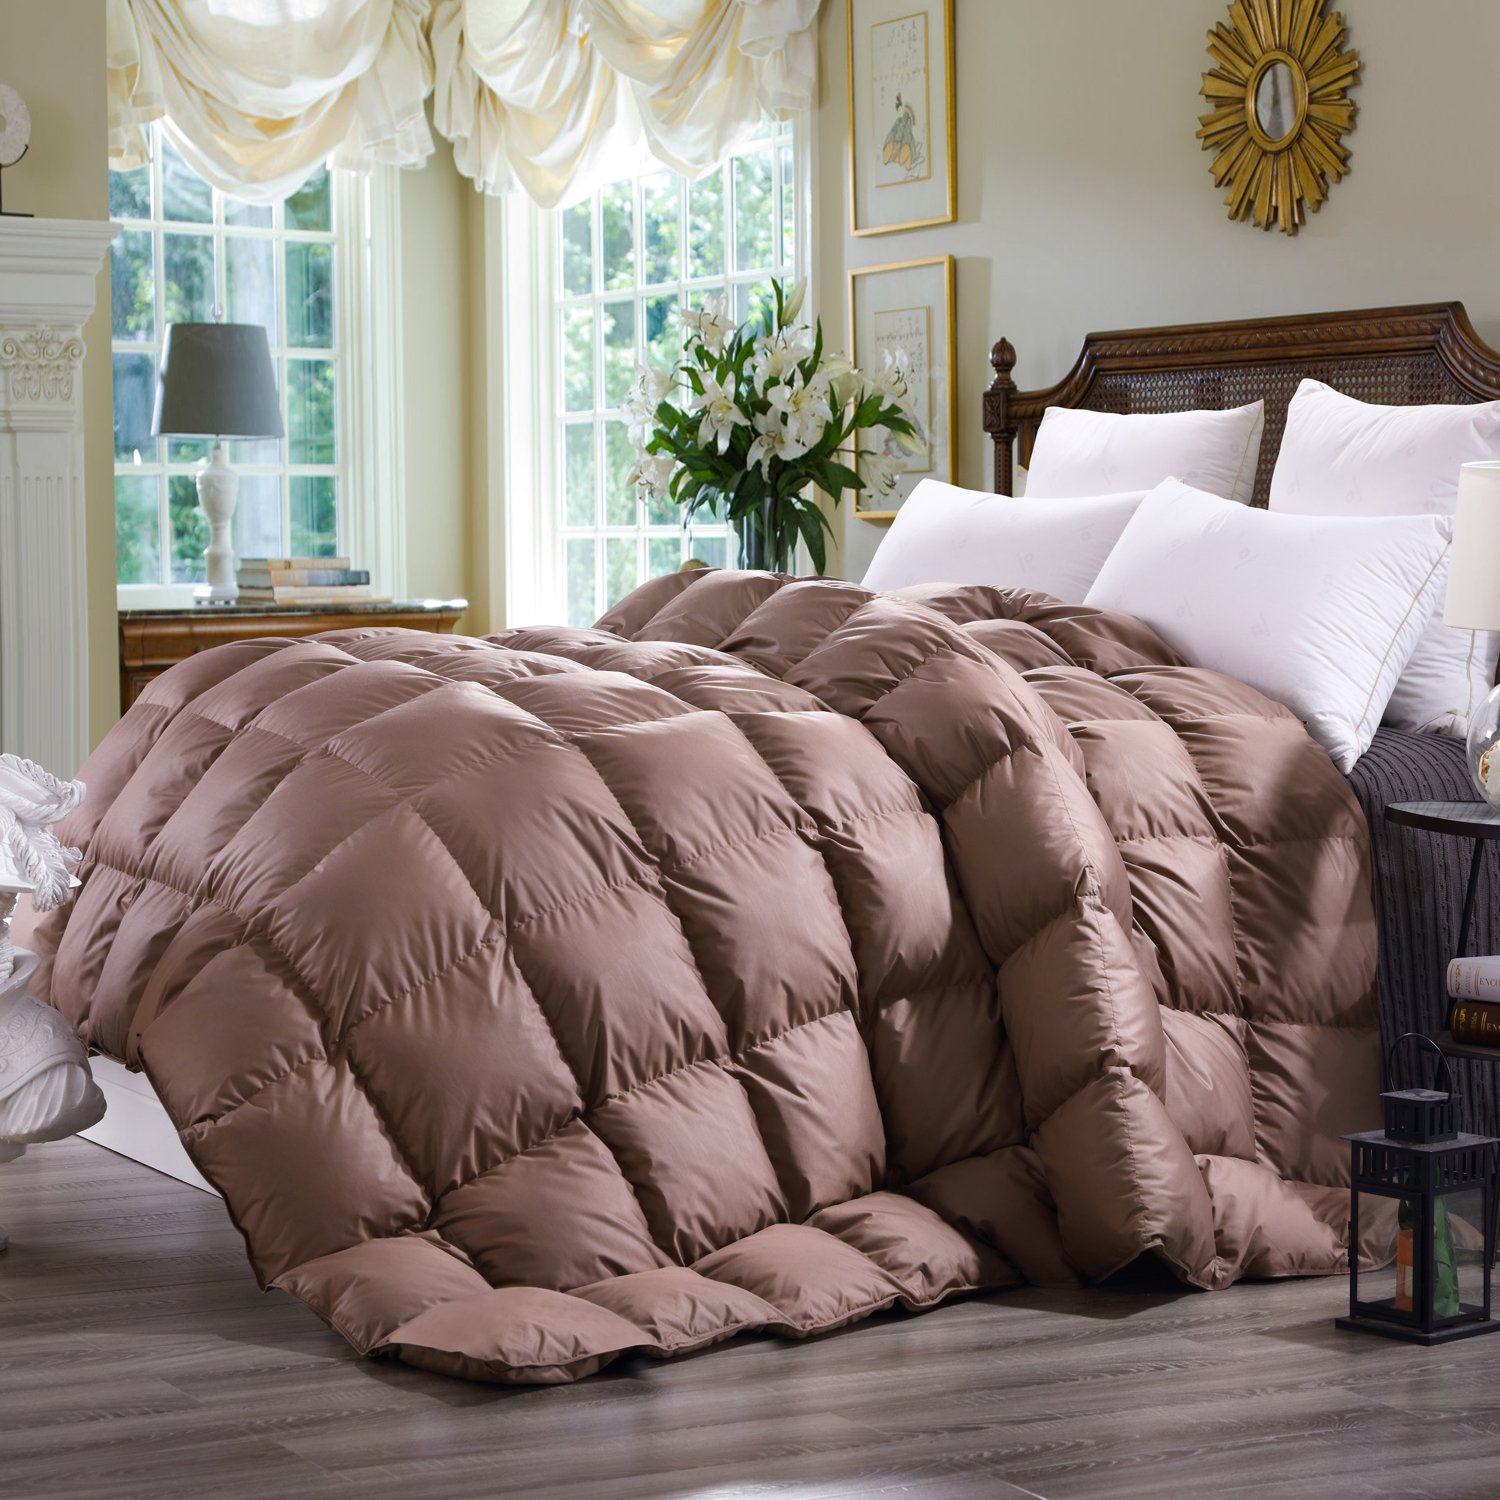 C&W Luxurious Goose Down Comforter Duvet Insert All Seasons Lightweight Solid Mocha Hypo-allergenic 600+ Fill Power (Queen,Mocha)